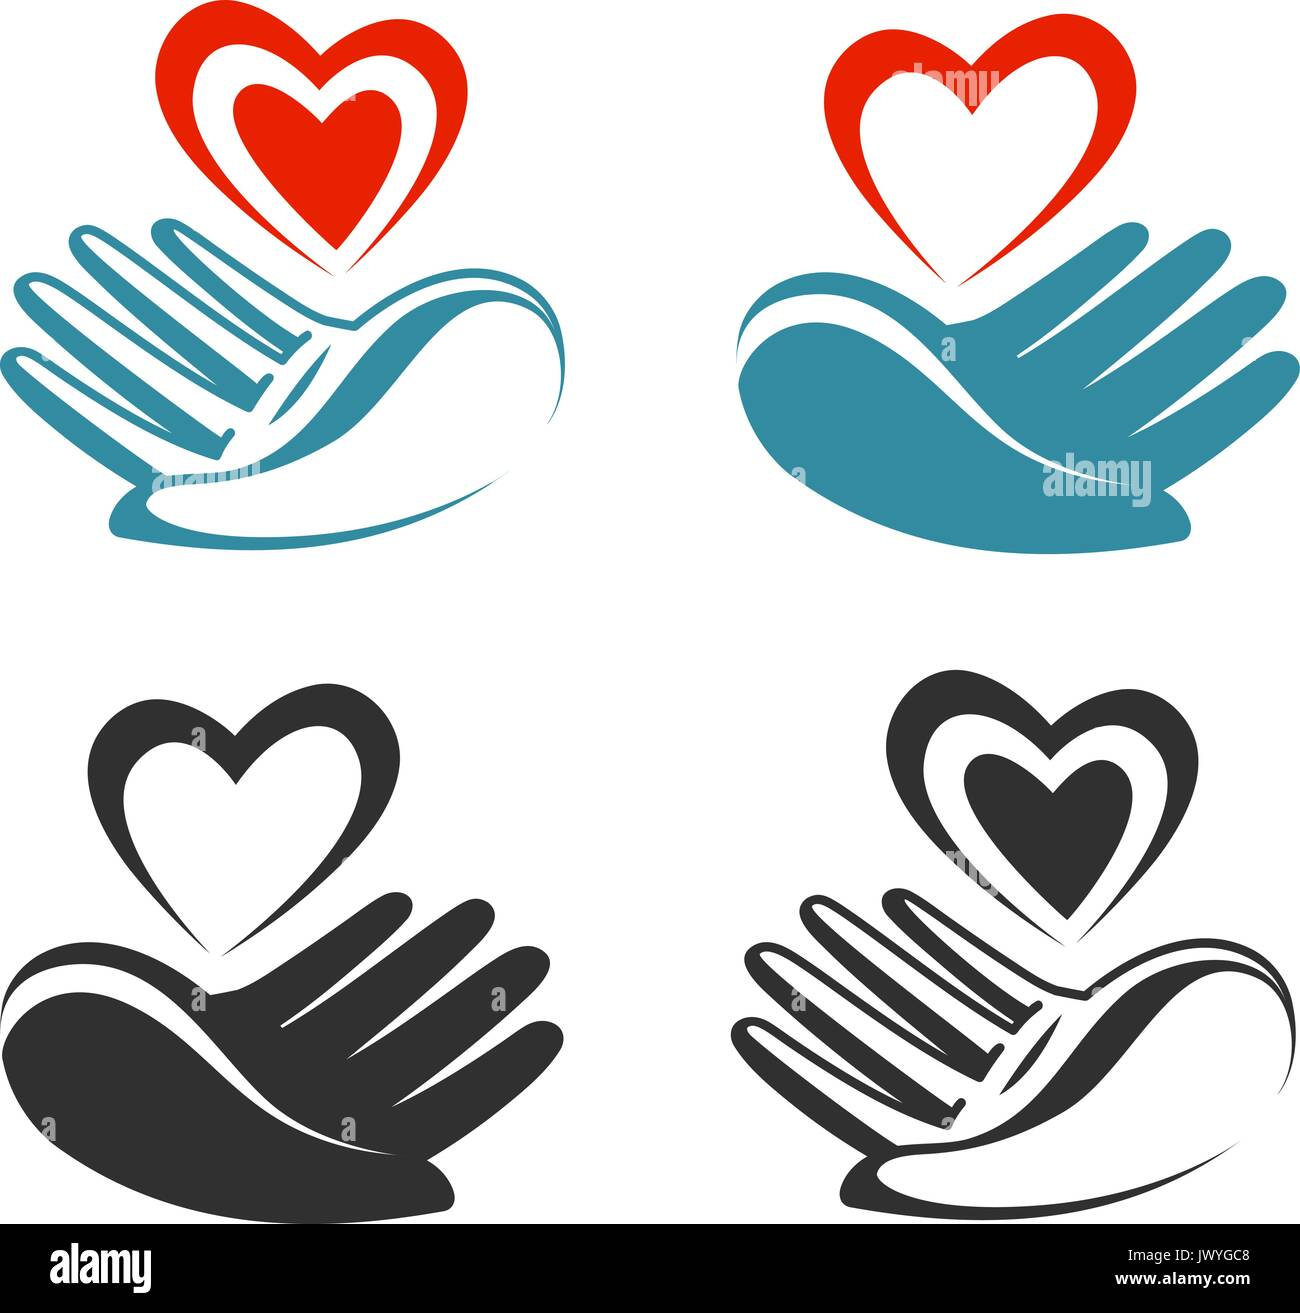 Health donation charity logo or label hand holding heart health donation charity logo or label hand holding heart symbol vector illustration biocorpaavc